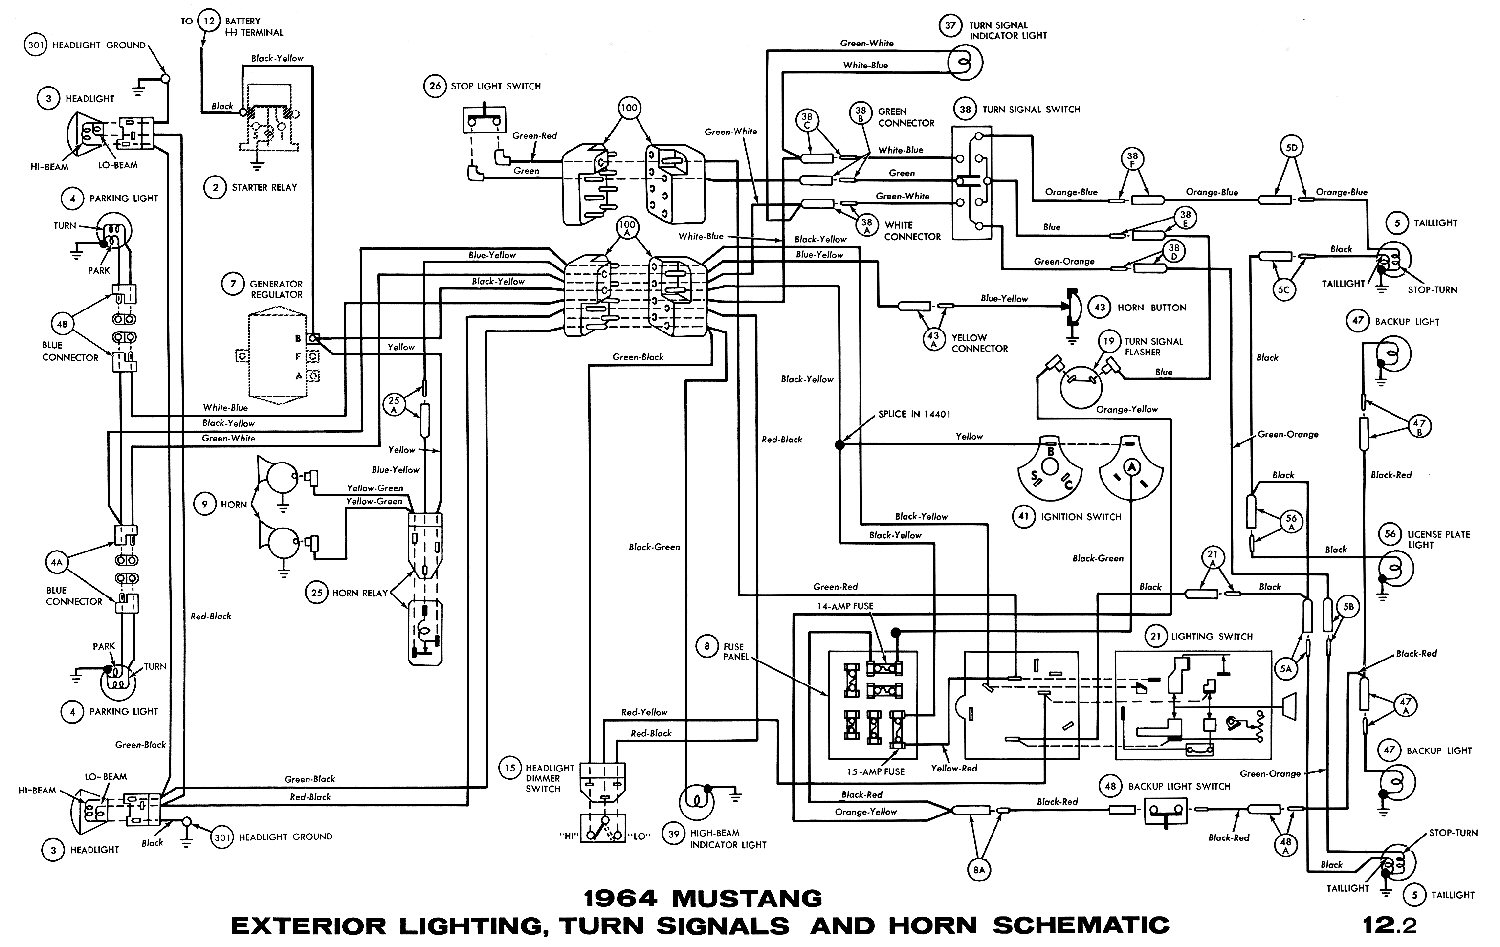 72 mustang wiring diagram find wiring diagram u2022 rh empcom co